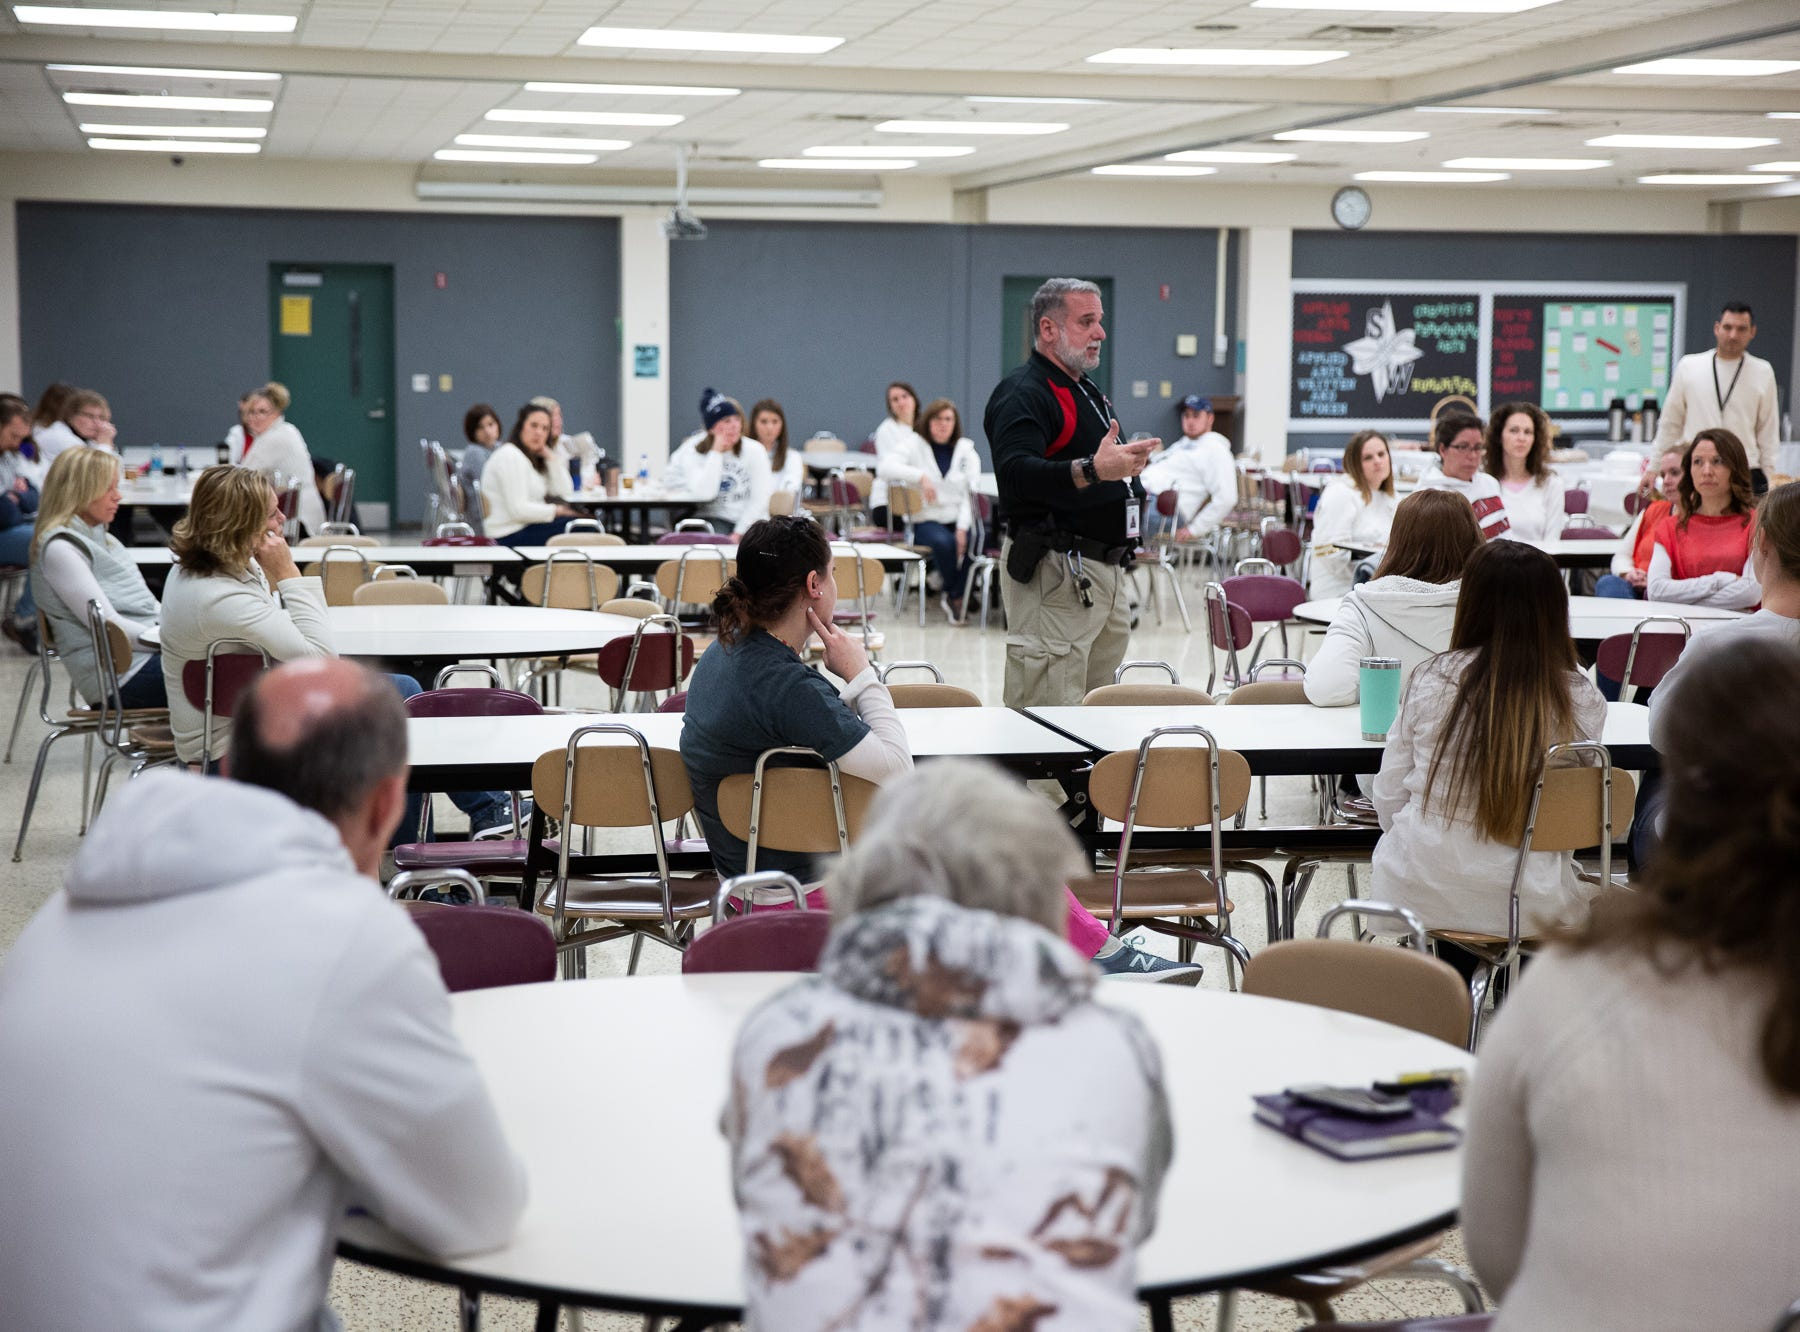 School staff debrief about lessons learned while they take part in an active shooter drill at South Western High School, Monday, Jan. 21, 2019, in Penn Township. The drill simulated multiple scenarios involving an active shooter, allowing school security and local law enforcement agencies a hands-on opportunity to drill on engaging an active shooter while also giving school staff experience with how real world scenarios could unfold.